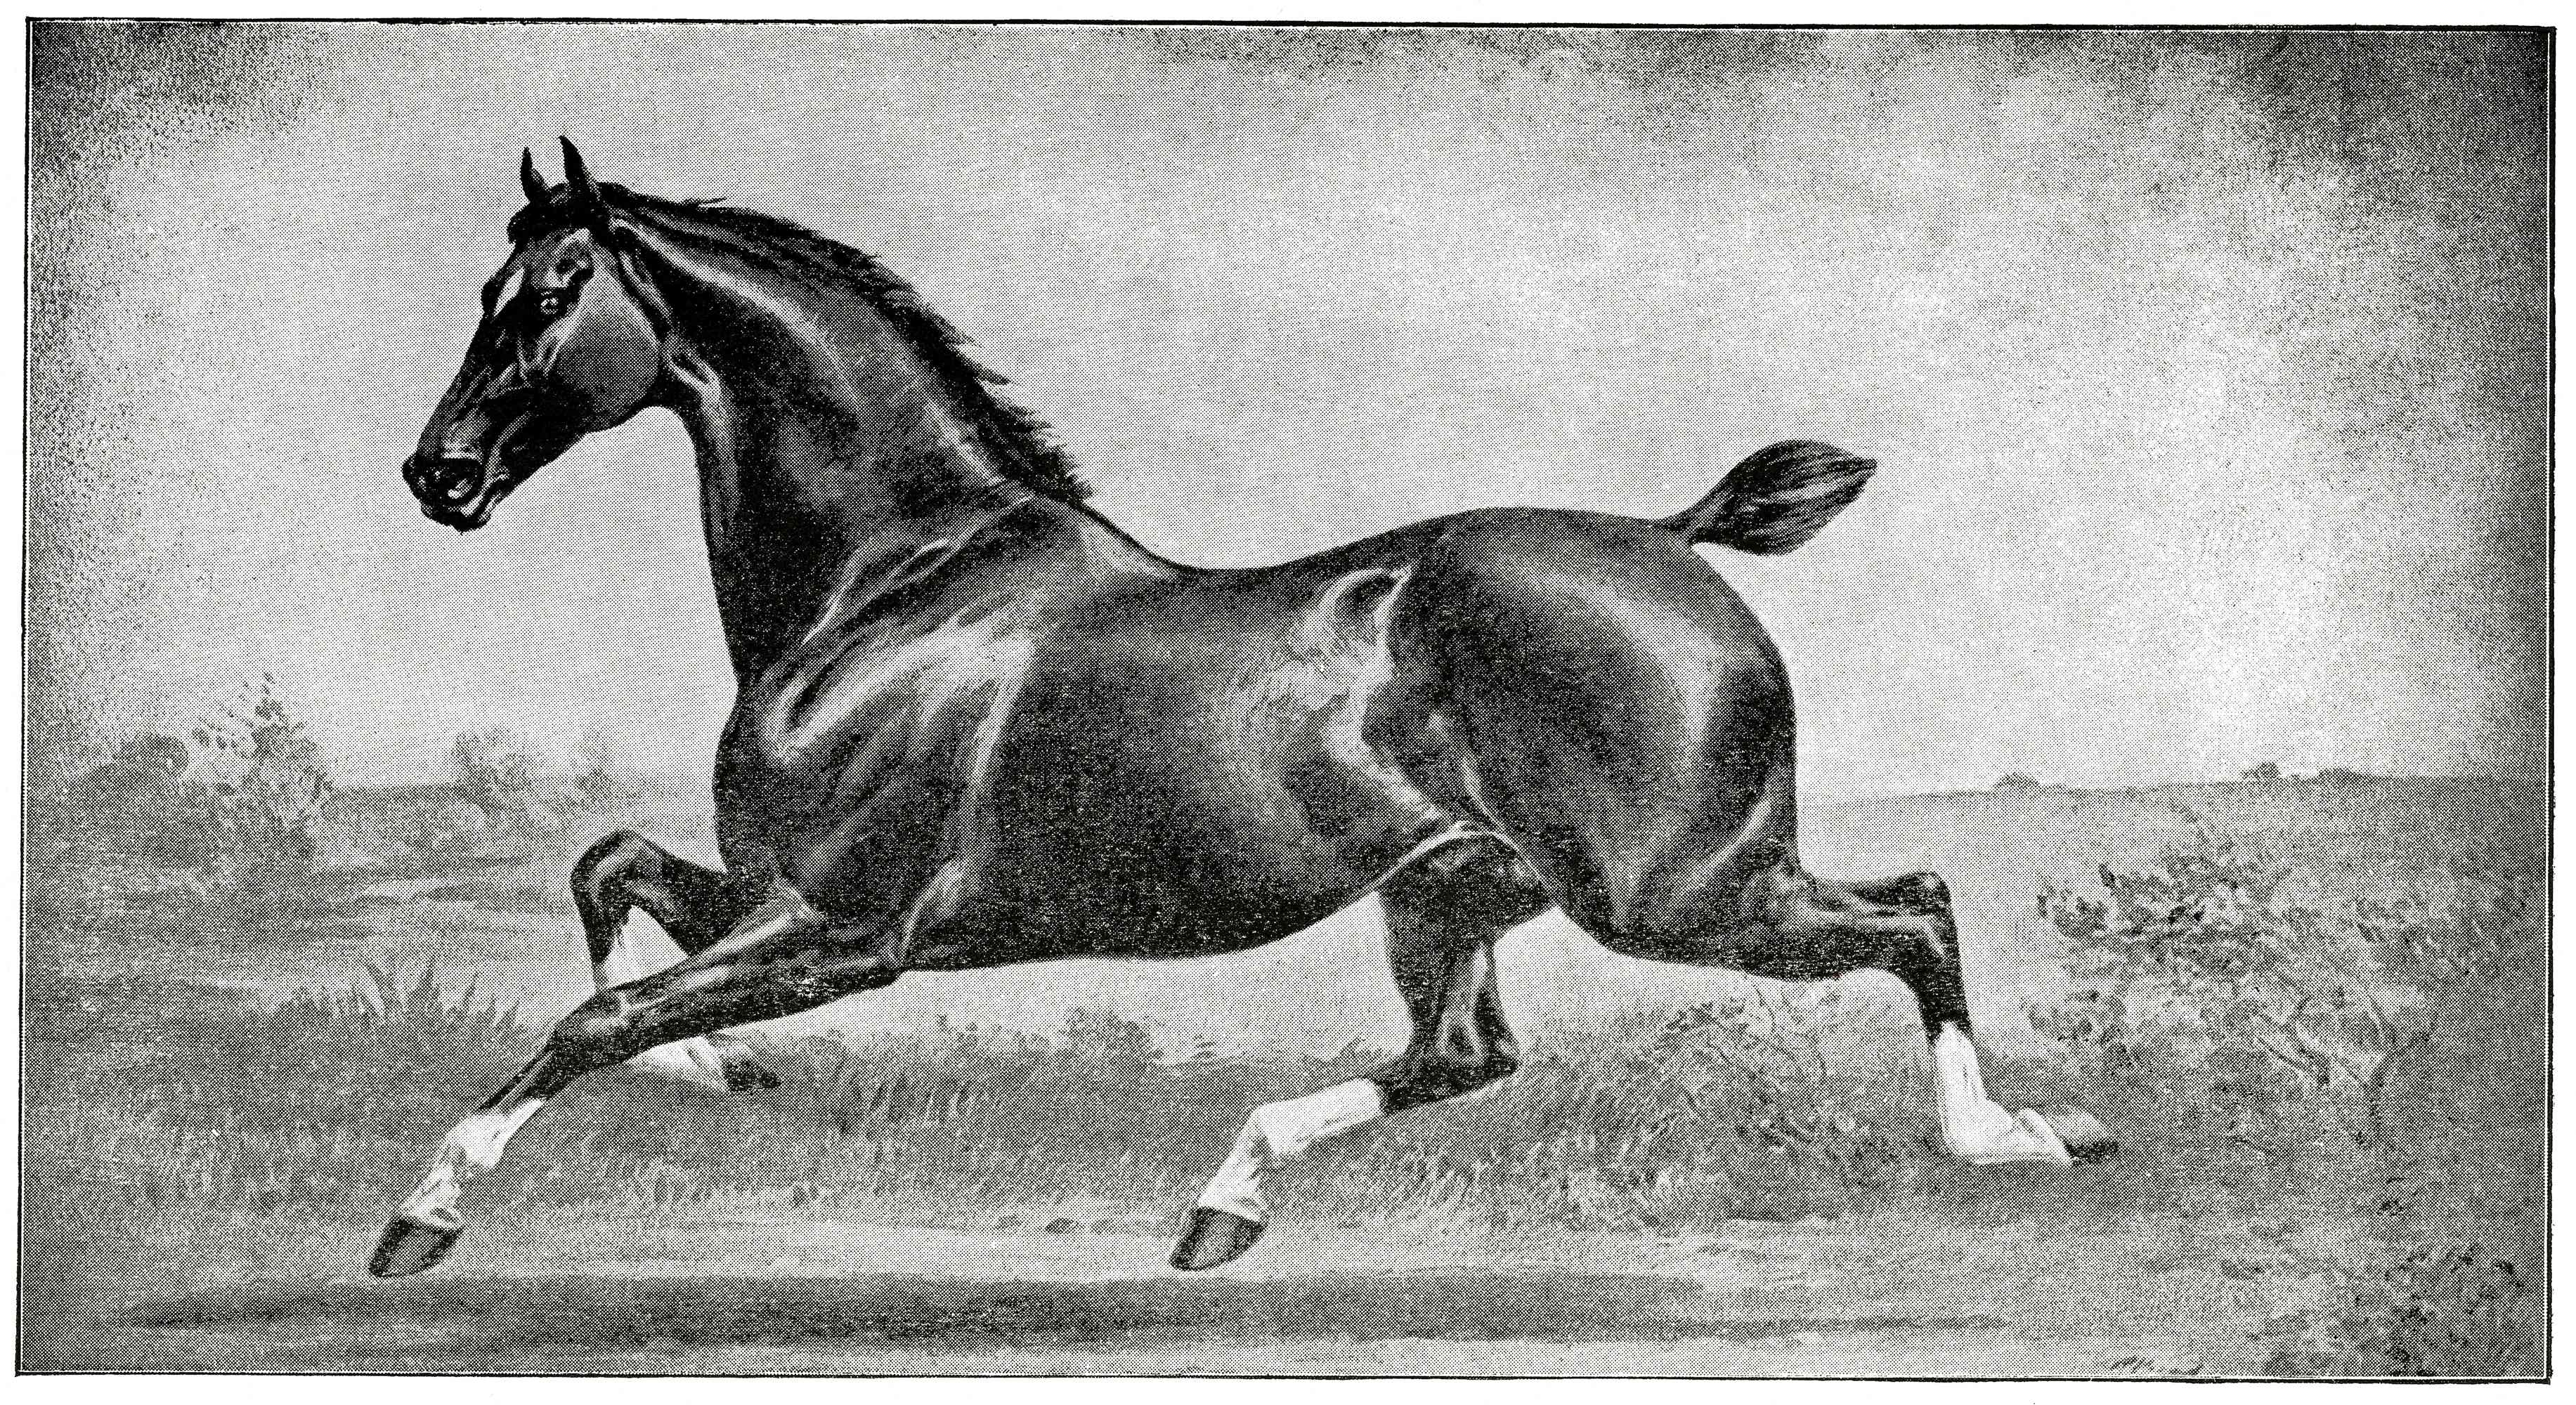 Drawing of a Hackney Horse trotting.